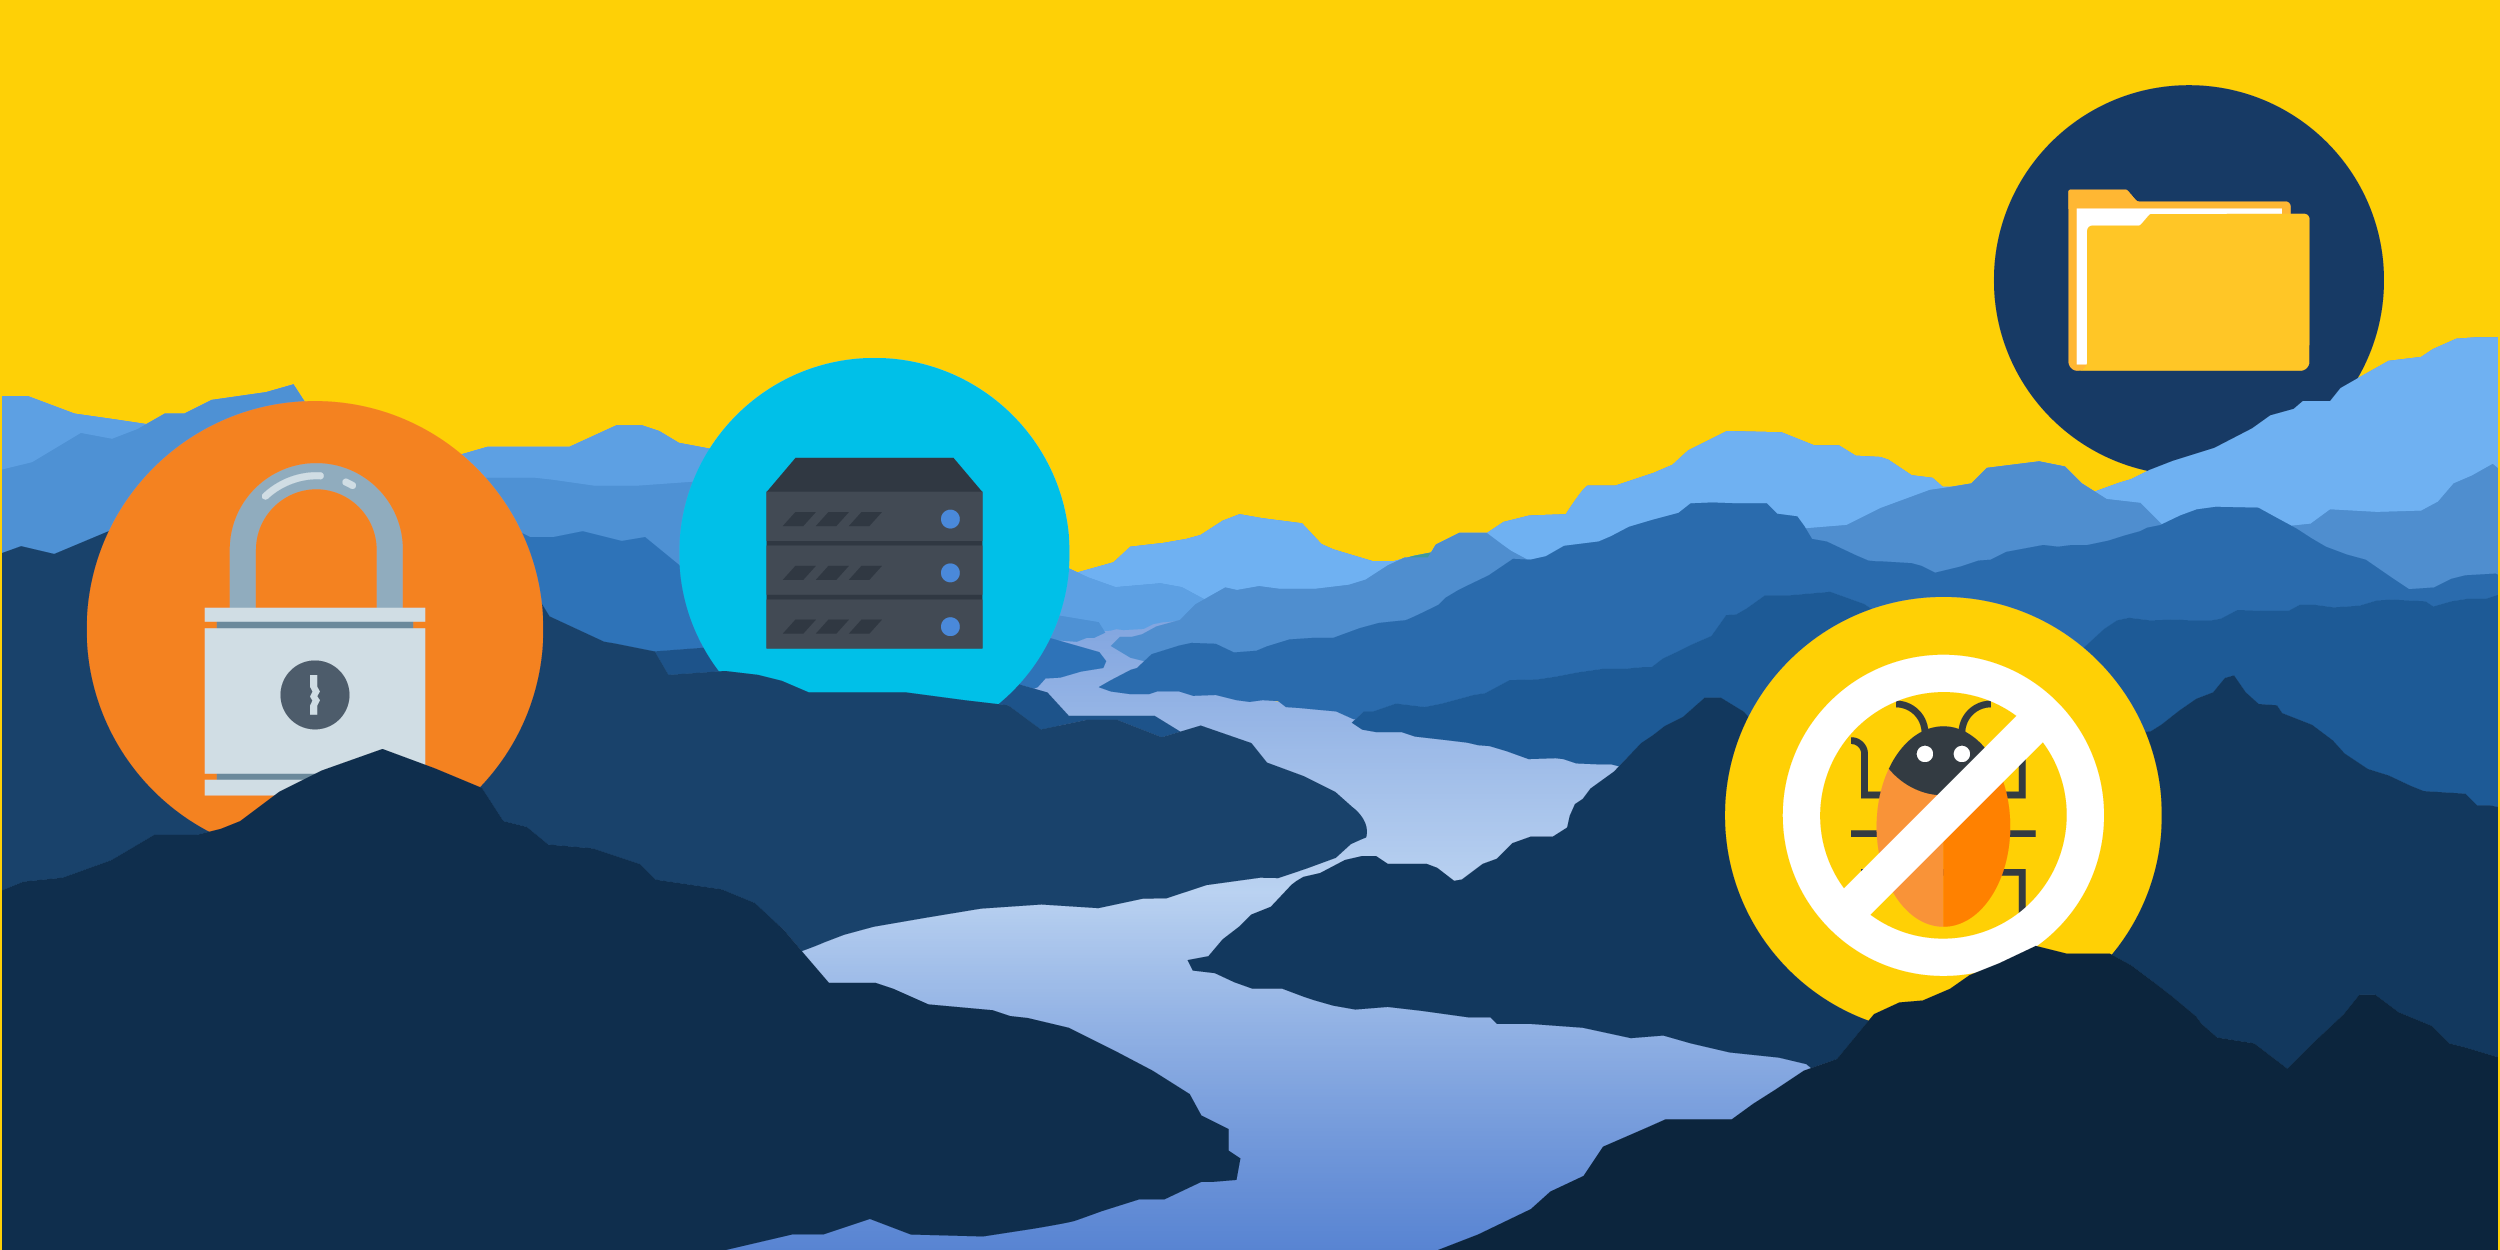 "an illustration of a river with icons of a folder, a server, a link, and a ""no bugs"" sign along its banks symbolizing how Symantec has increased data security for WOTR and therefore contributed to watershed protection"